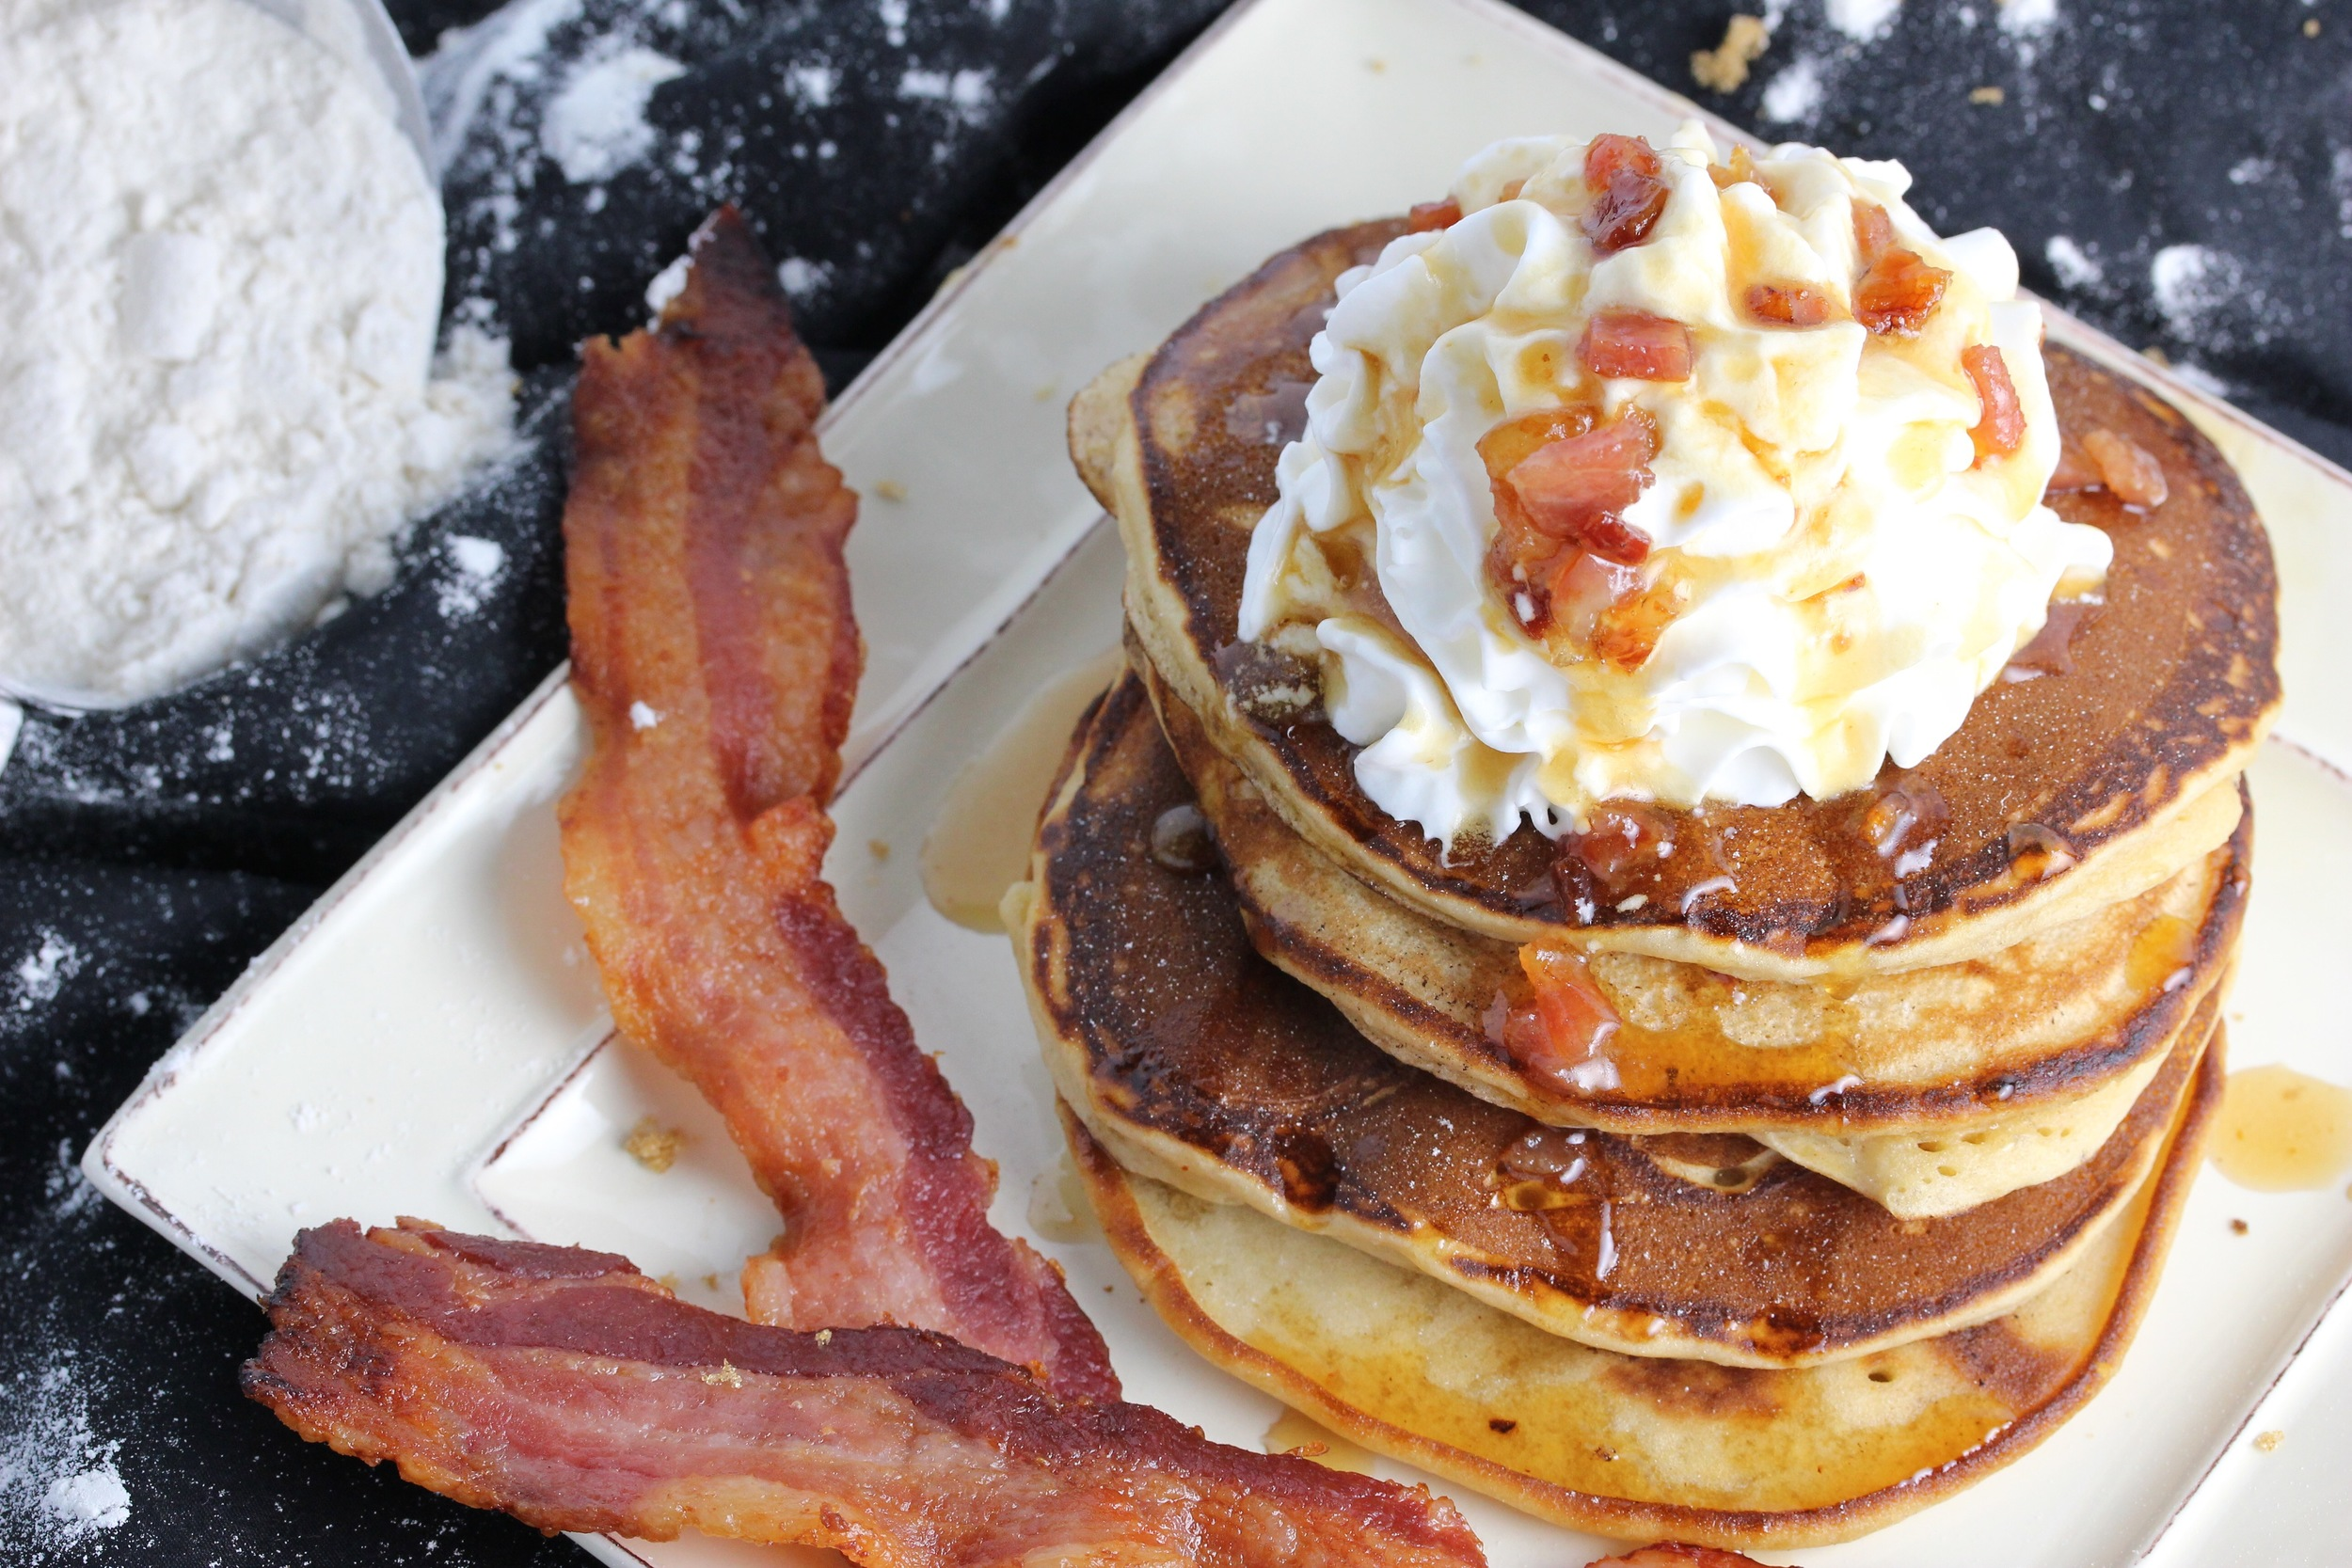 Maple bacon pancakes- these were just, orgasmically amazing.